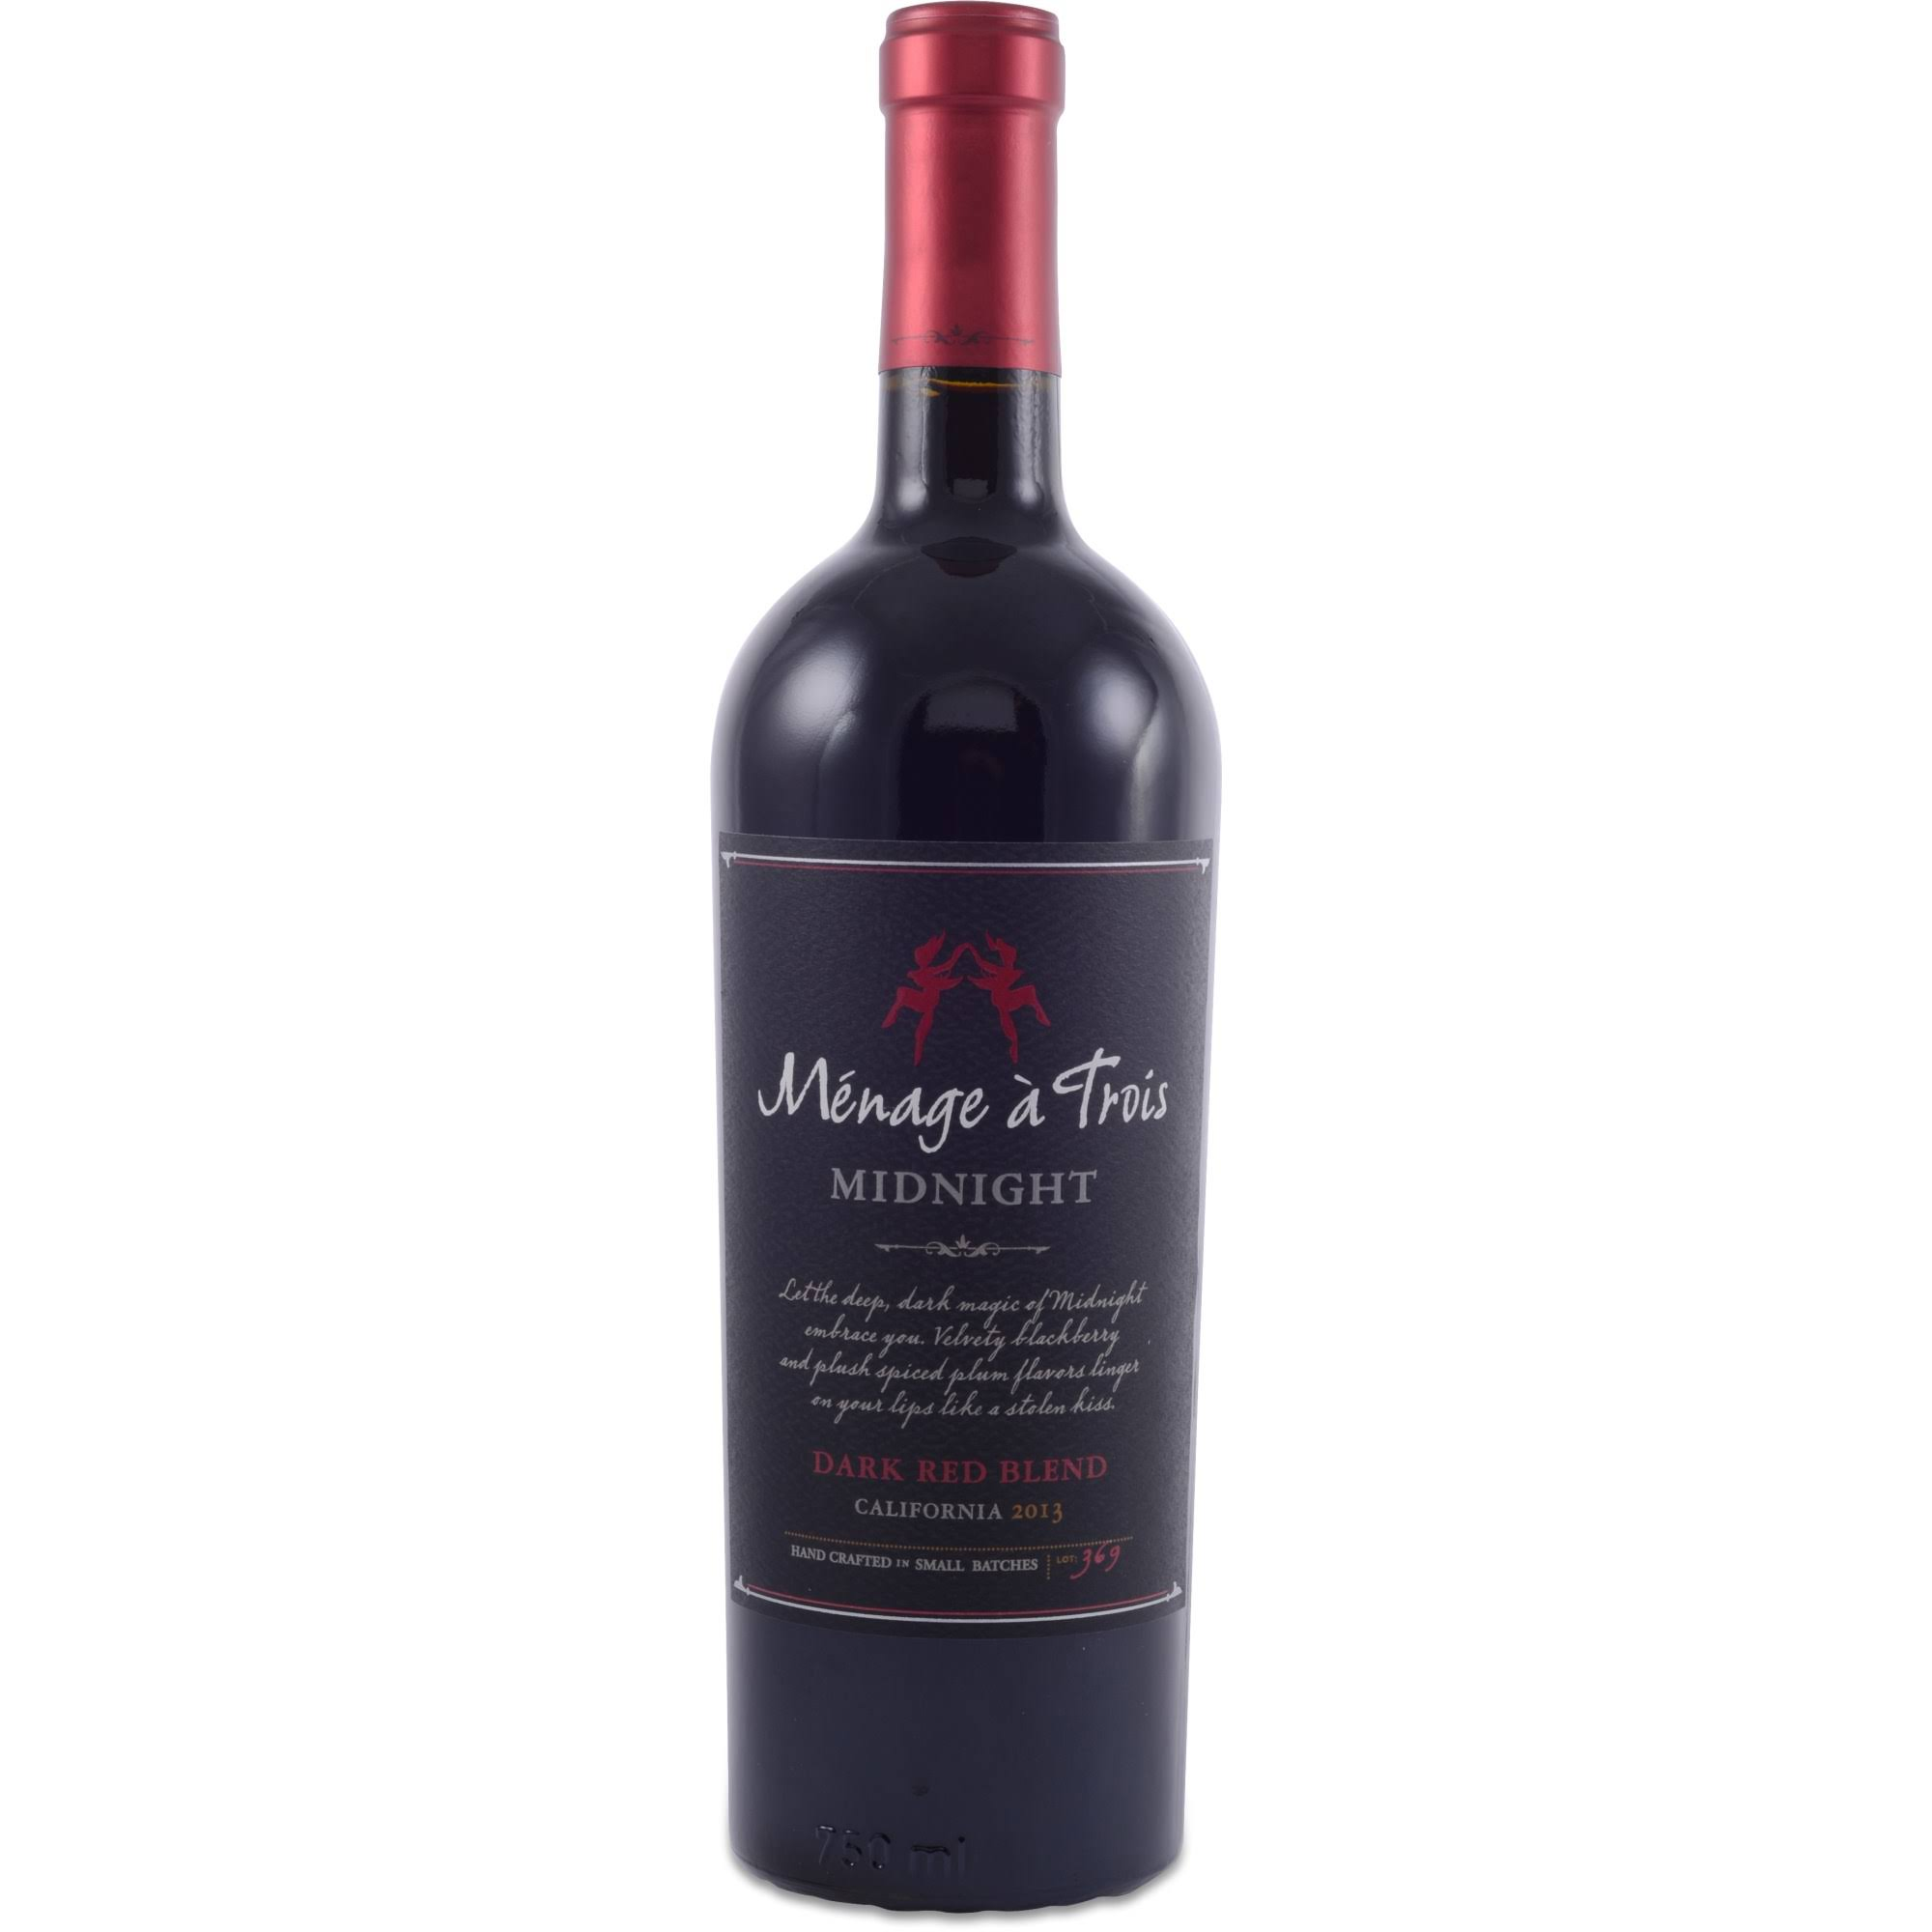 Ménage A Trois Midnight Dark Red Wine Blend - California